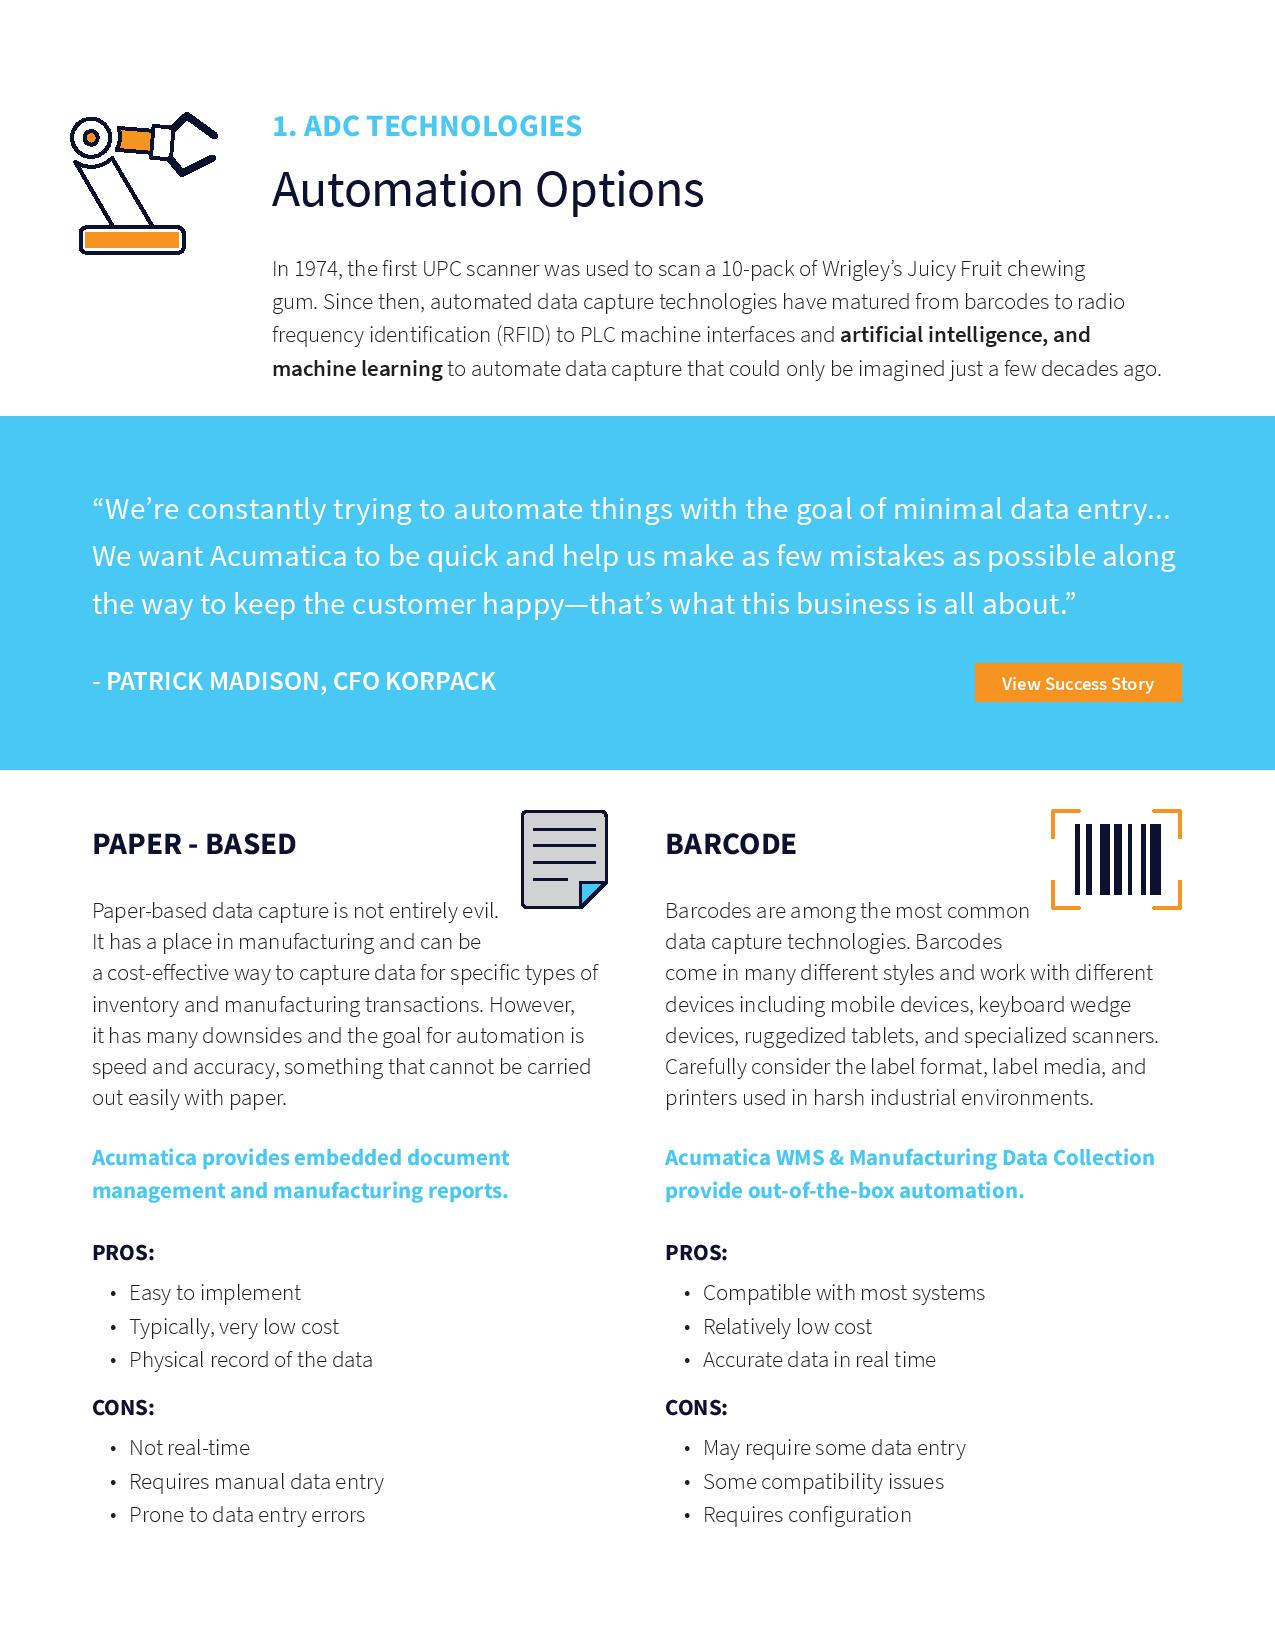 Automated Data Capture for Manufacturers, page 2